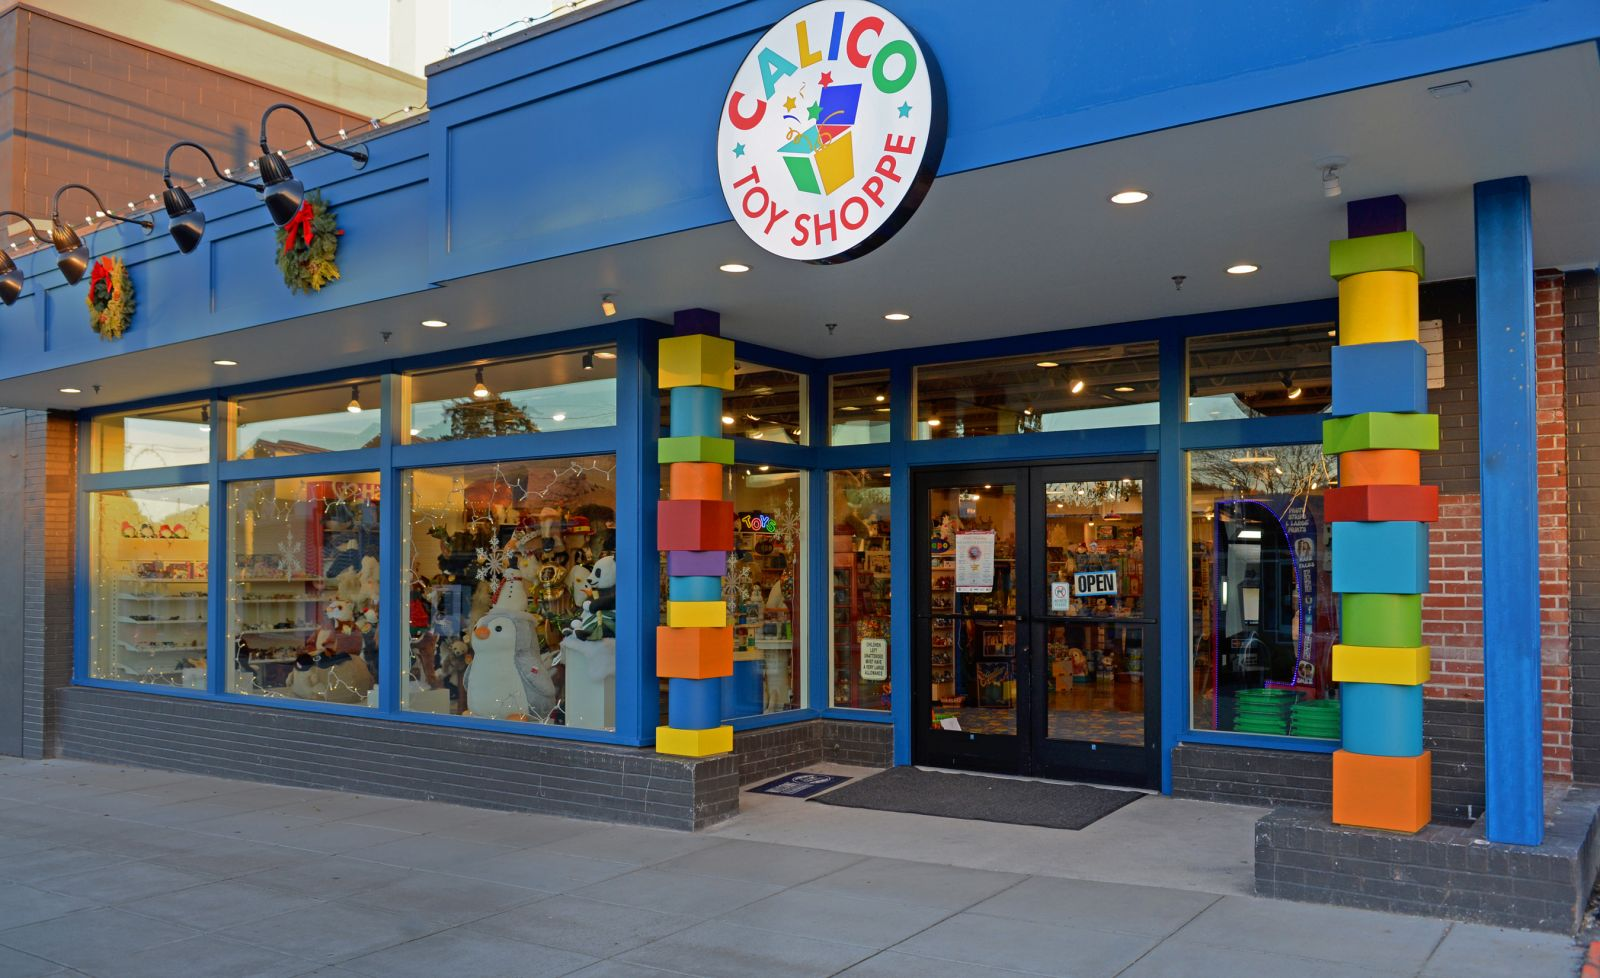 calico toy shop